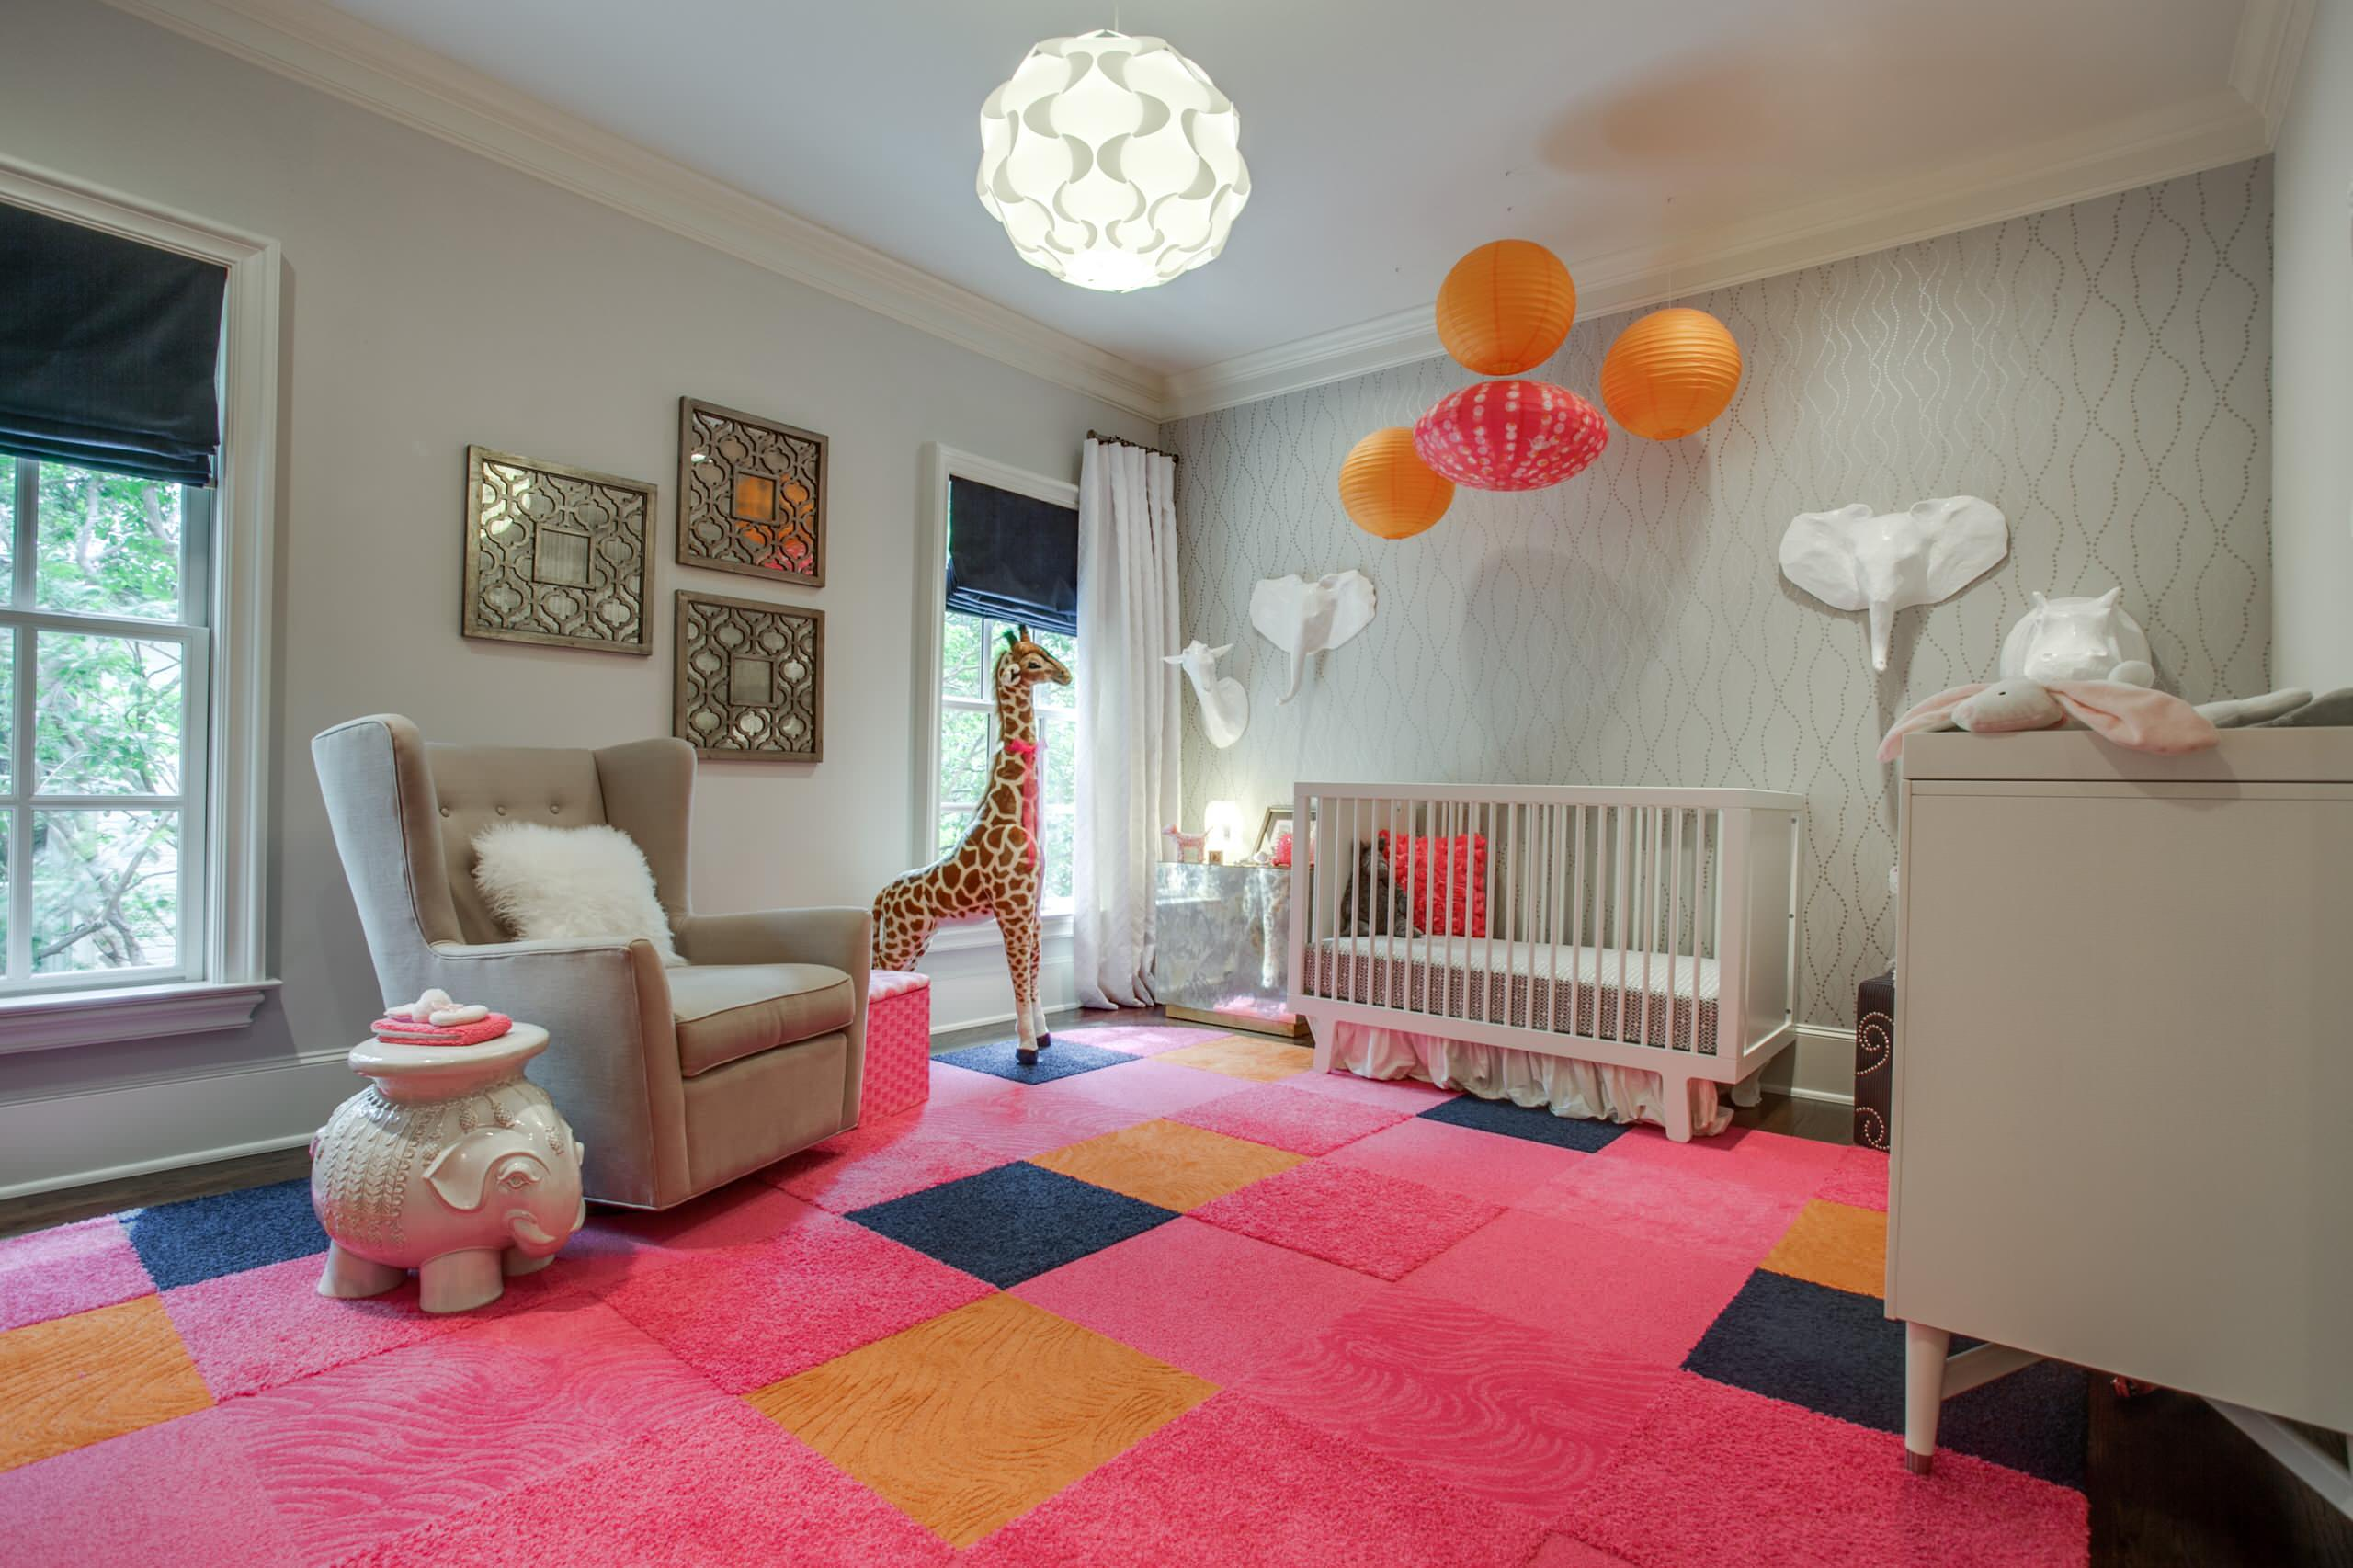 Patchwork style floor replaces the classic rug in this gorgeous girls' nursery